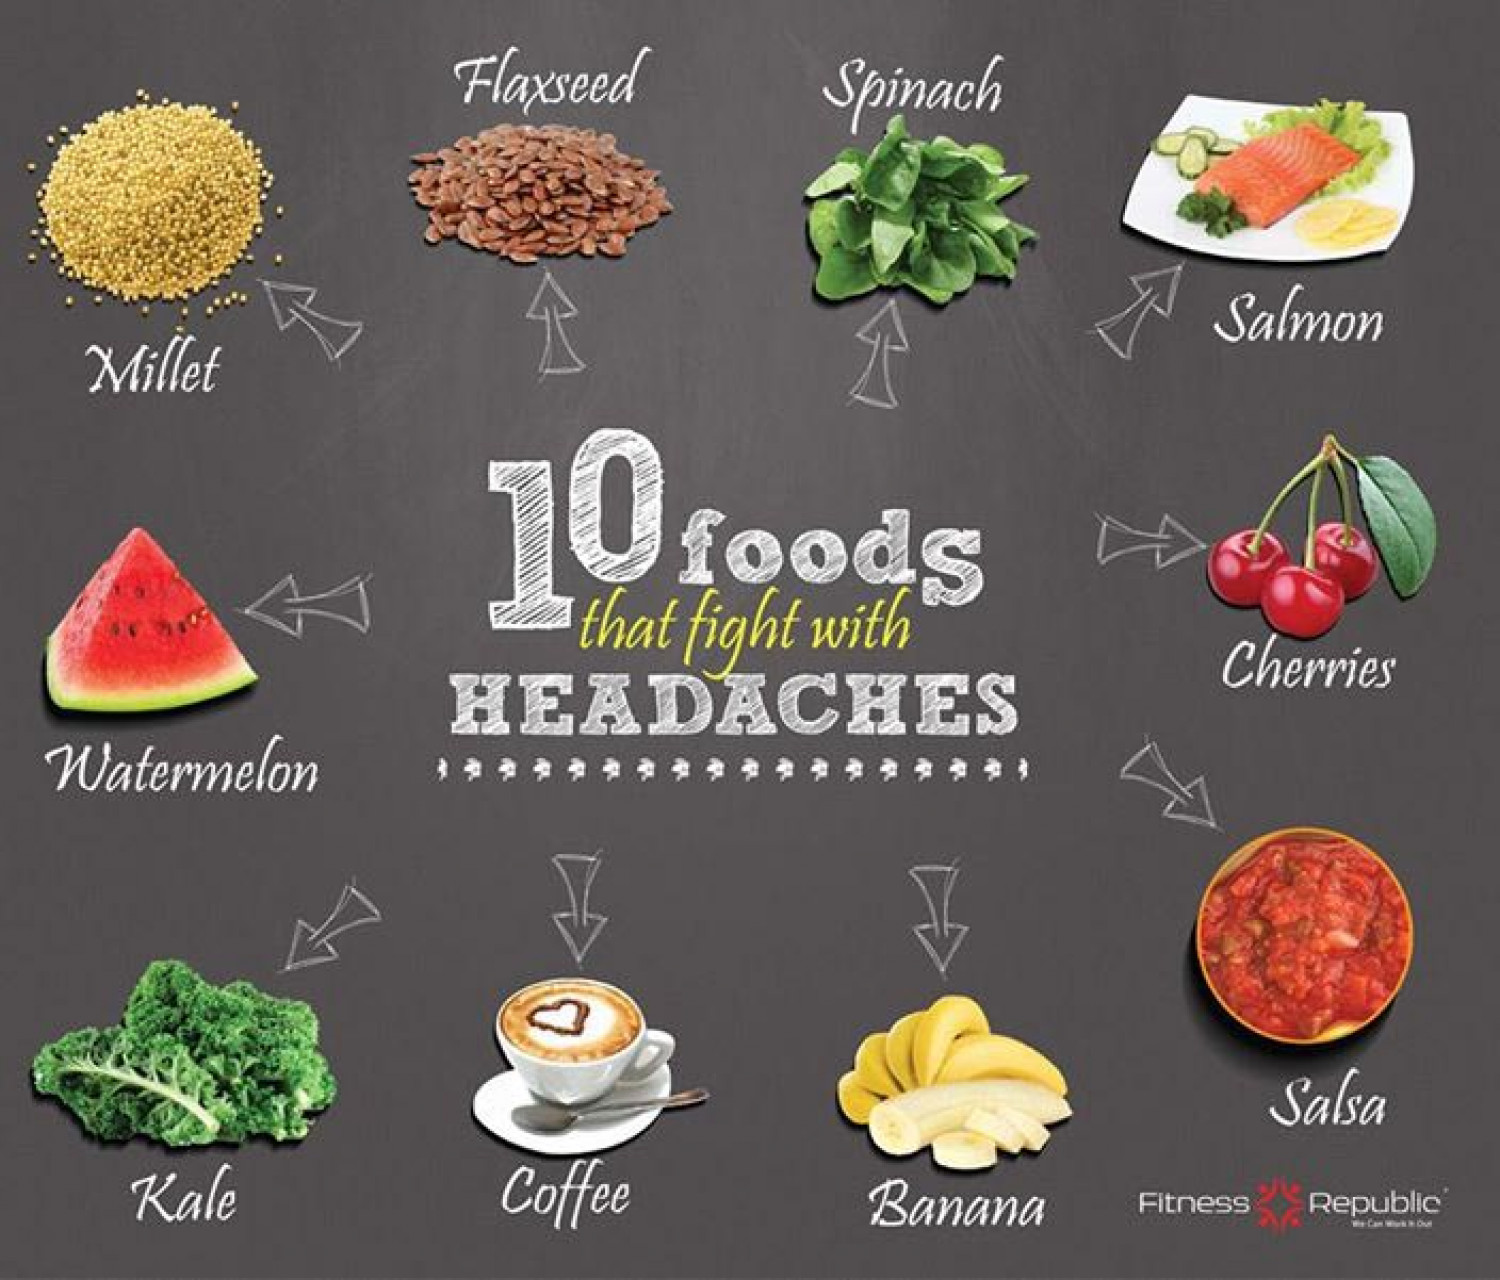 10 Foods That Fight with Headaches Infographic